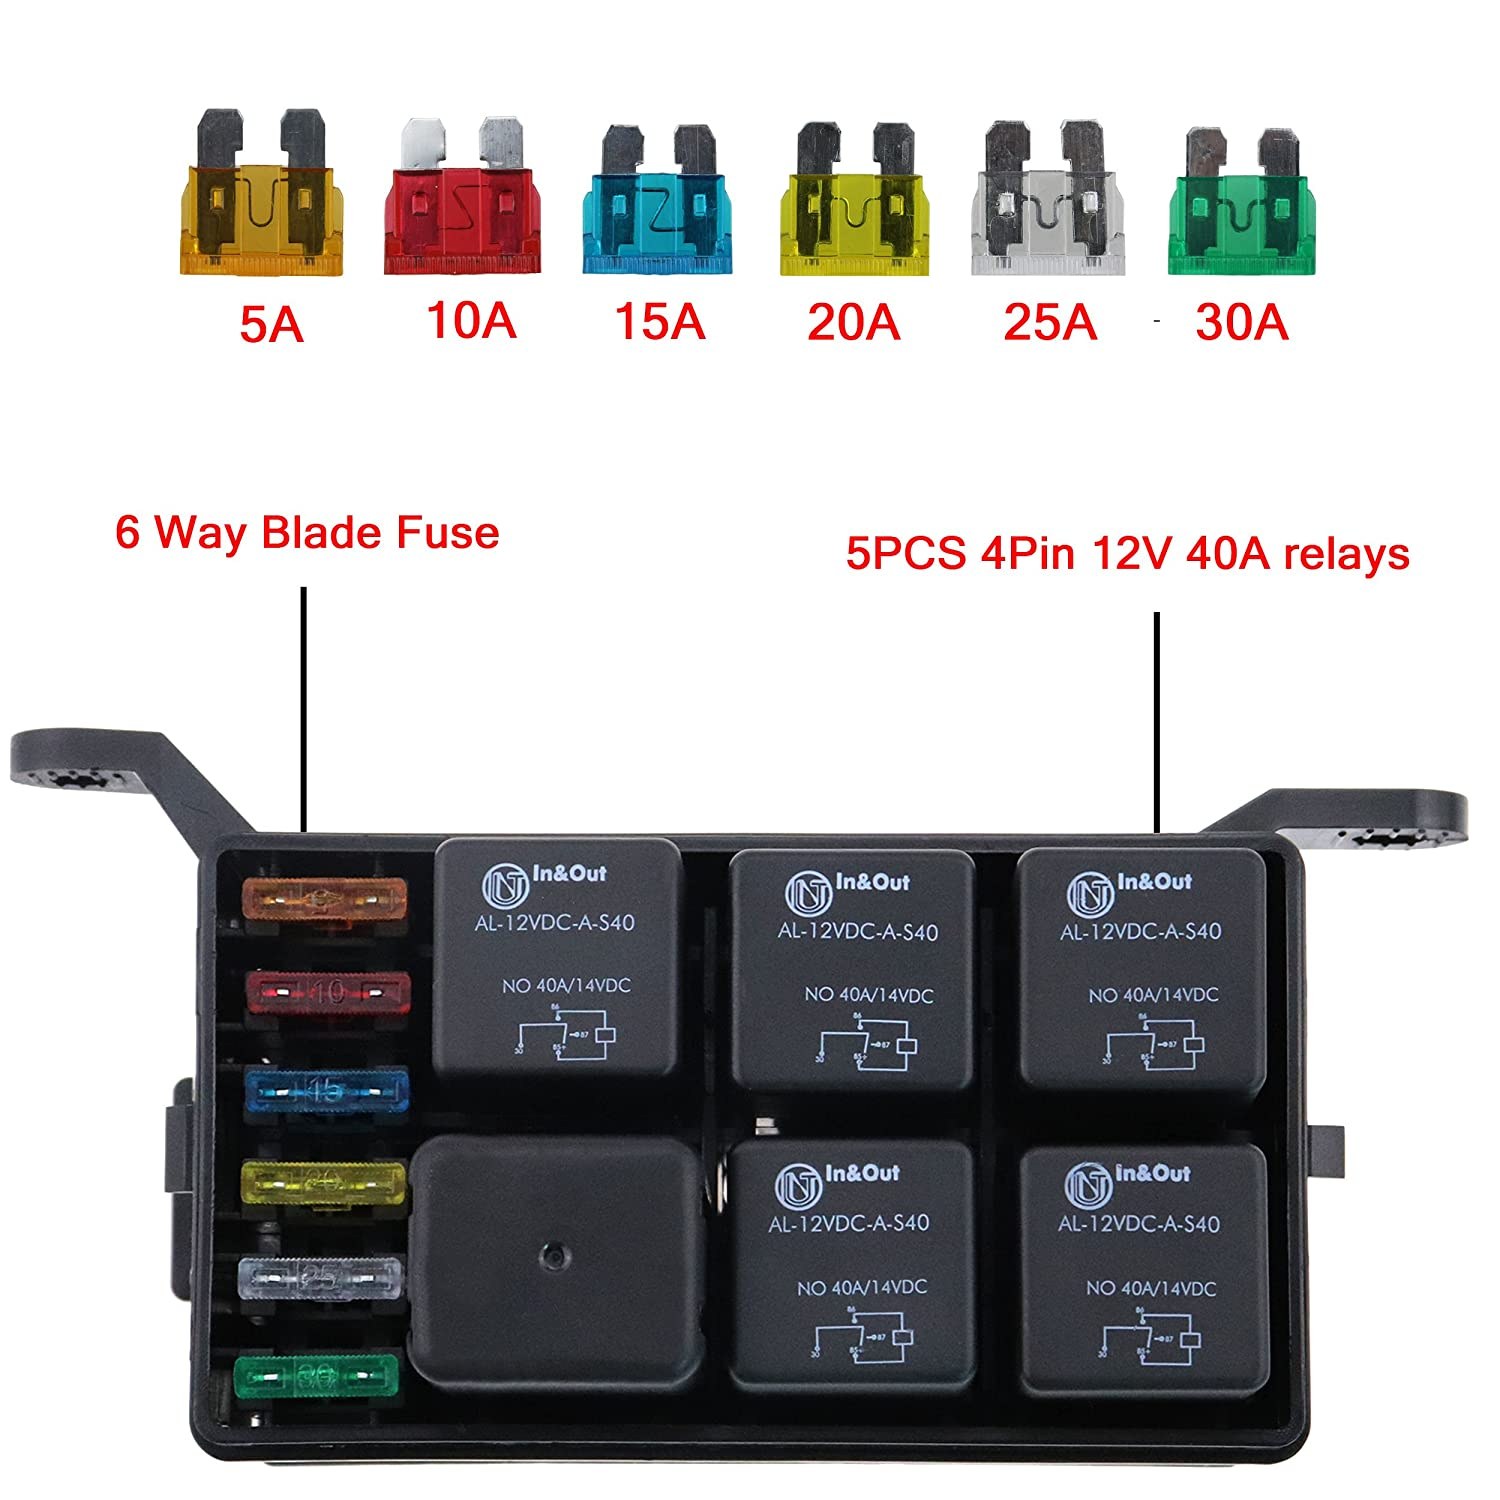 Iztor Universal 6 Way Blade Fuse Holder Box With Spade Terminals And Truck 5pcs 4pin